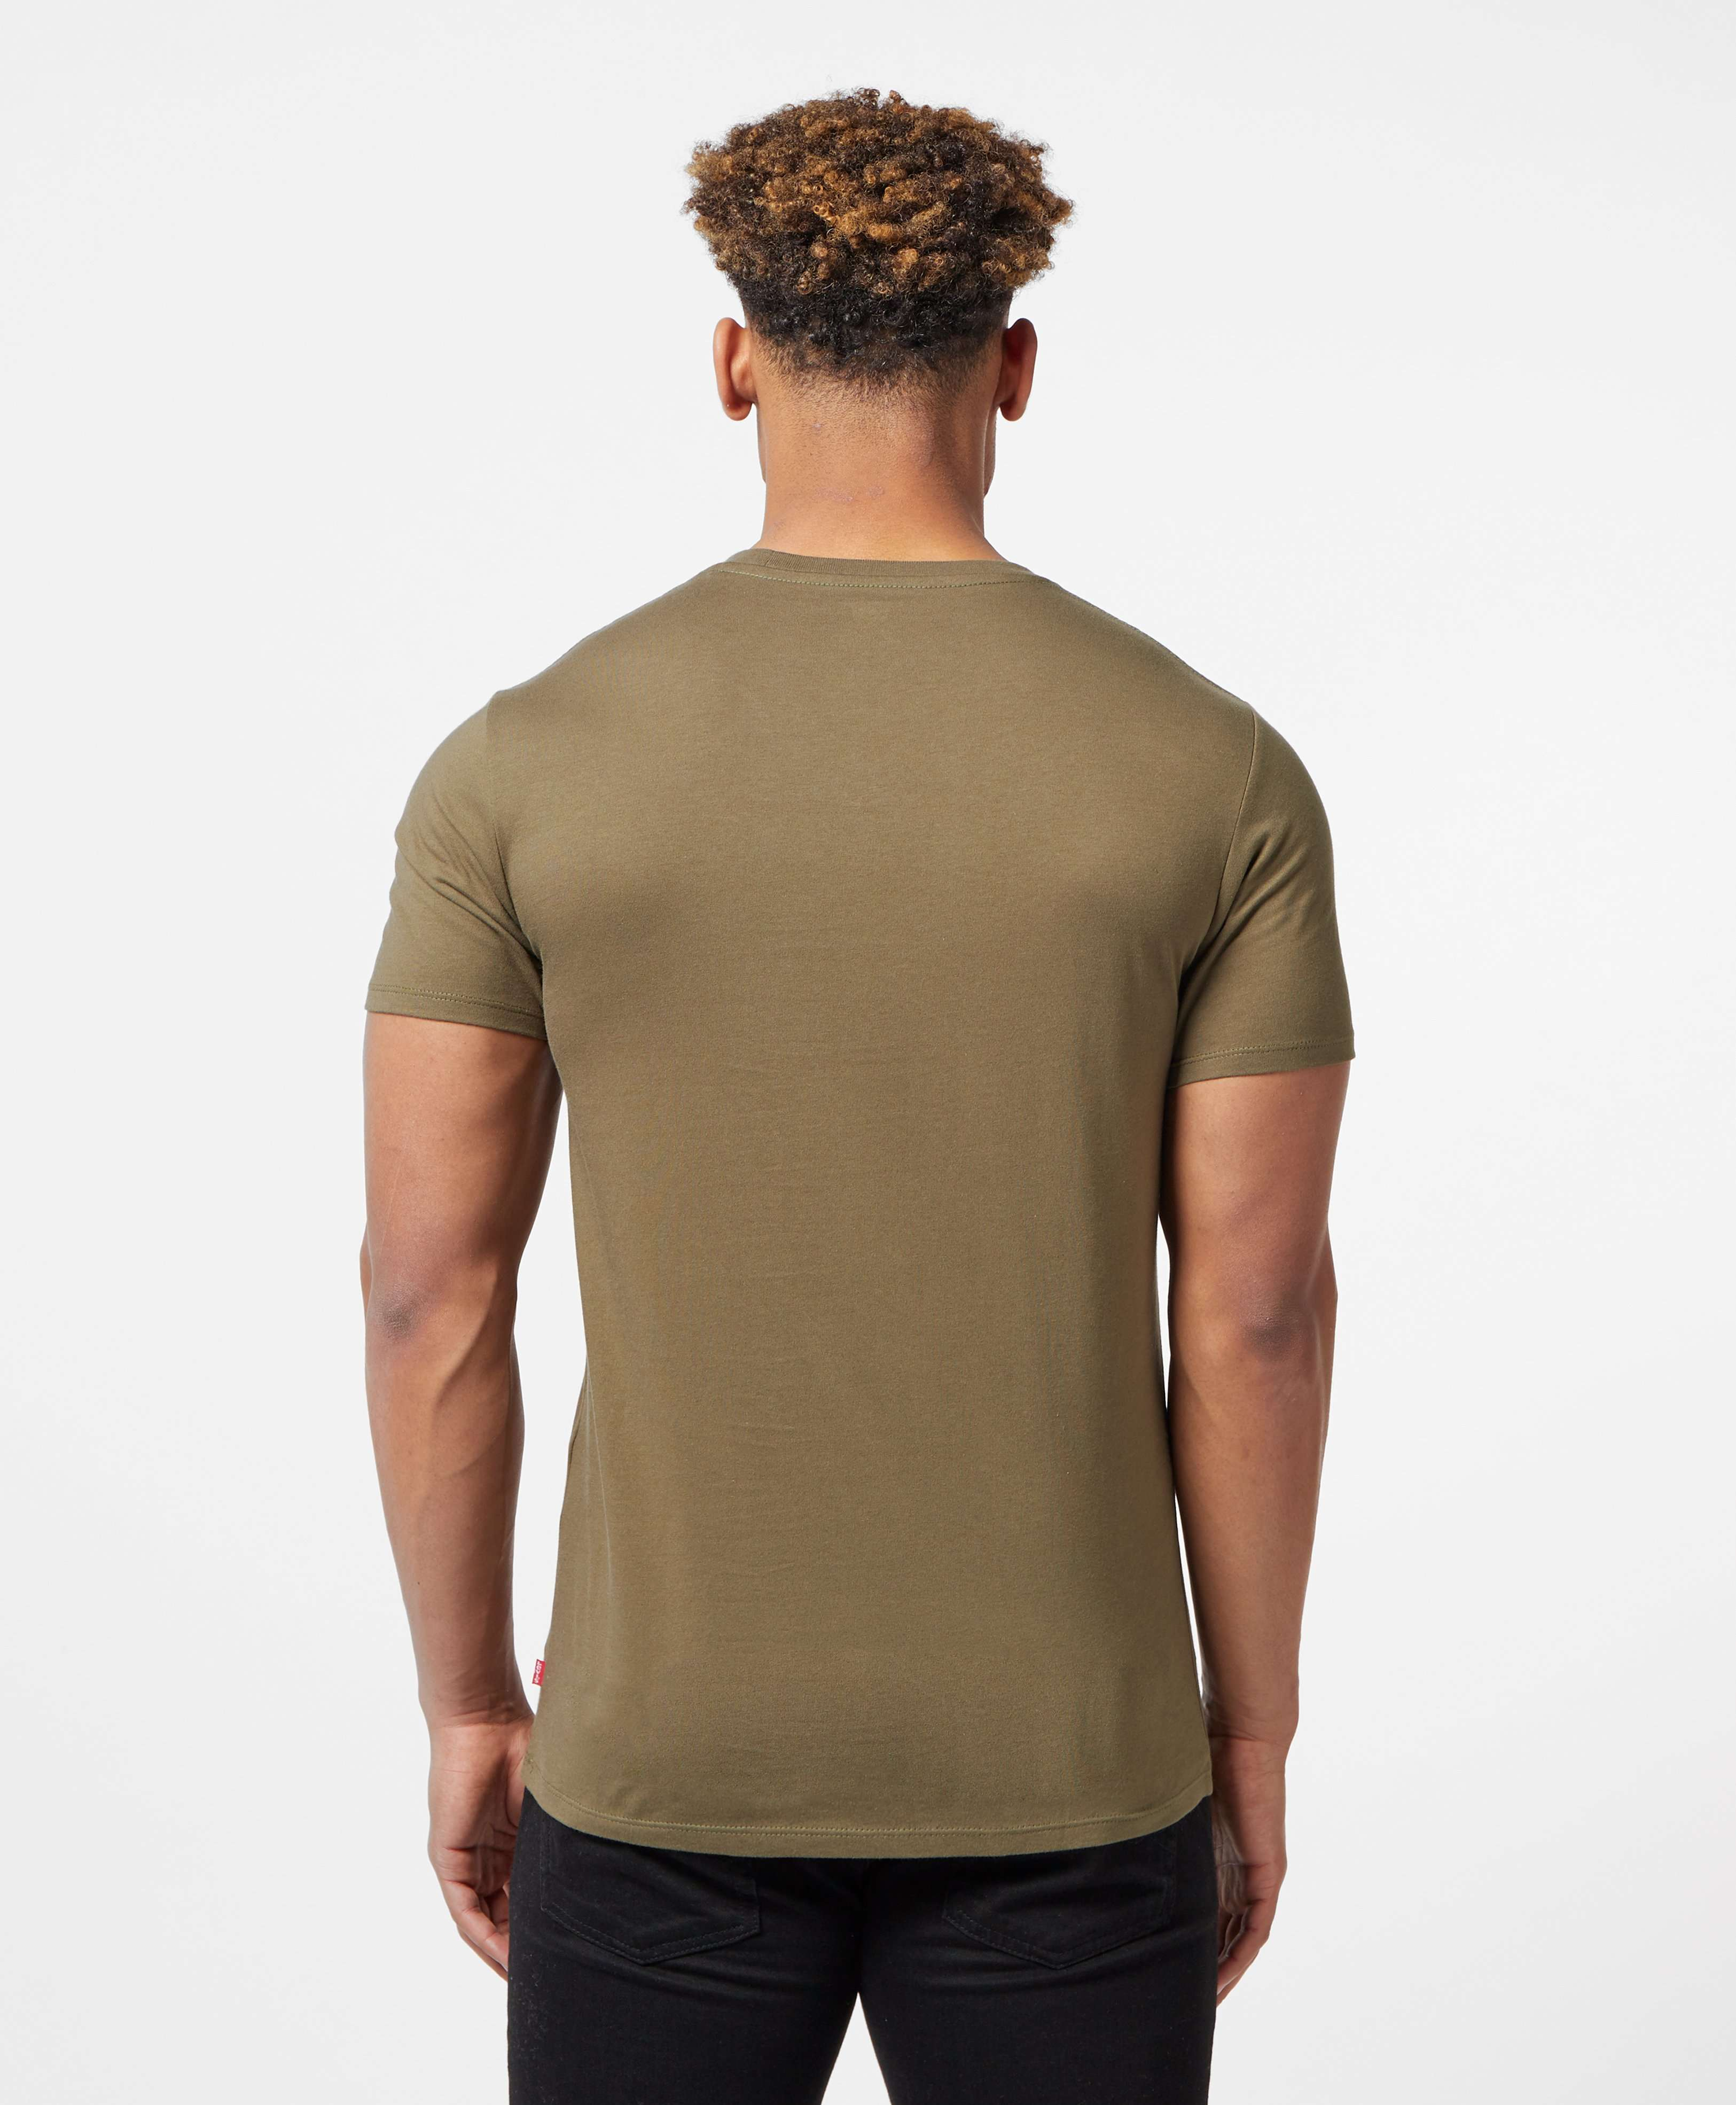 Levis Housemark Short Sleeve T-Shirt